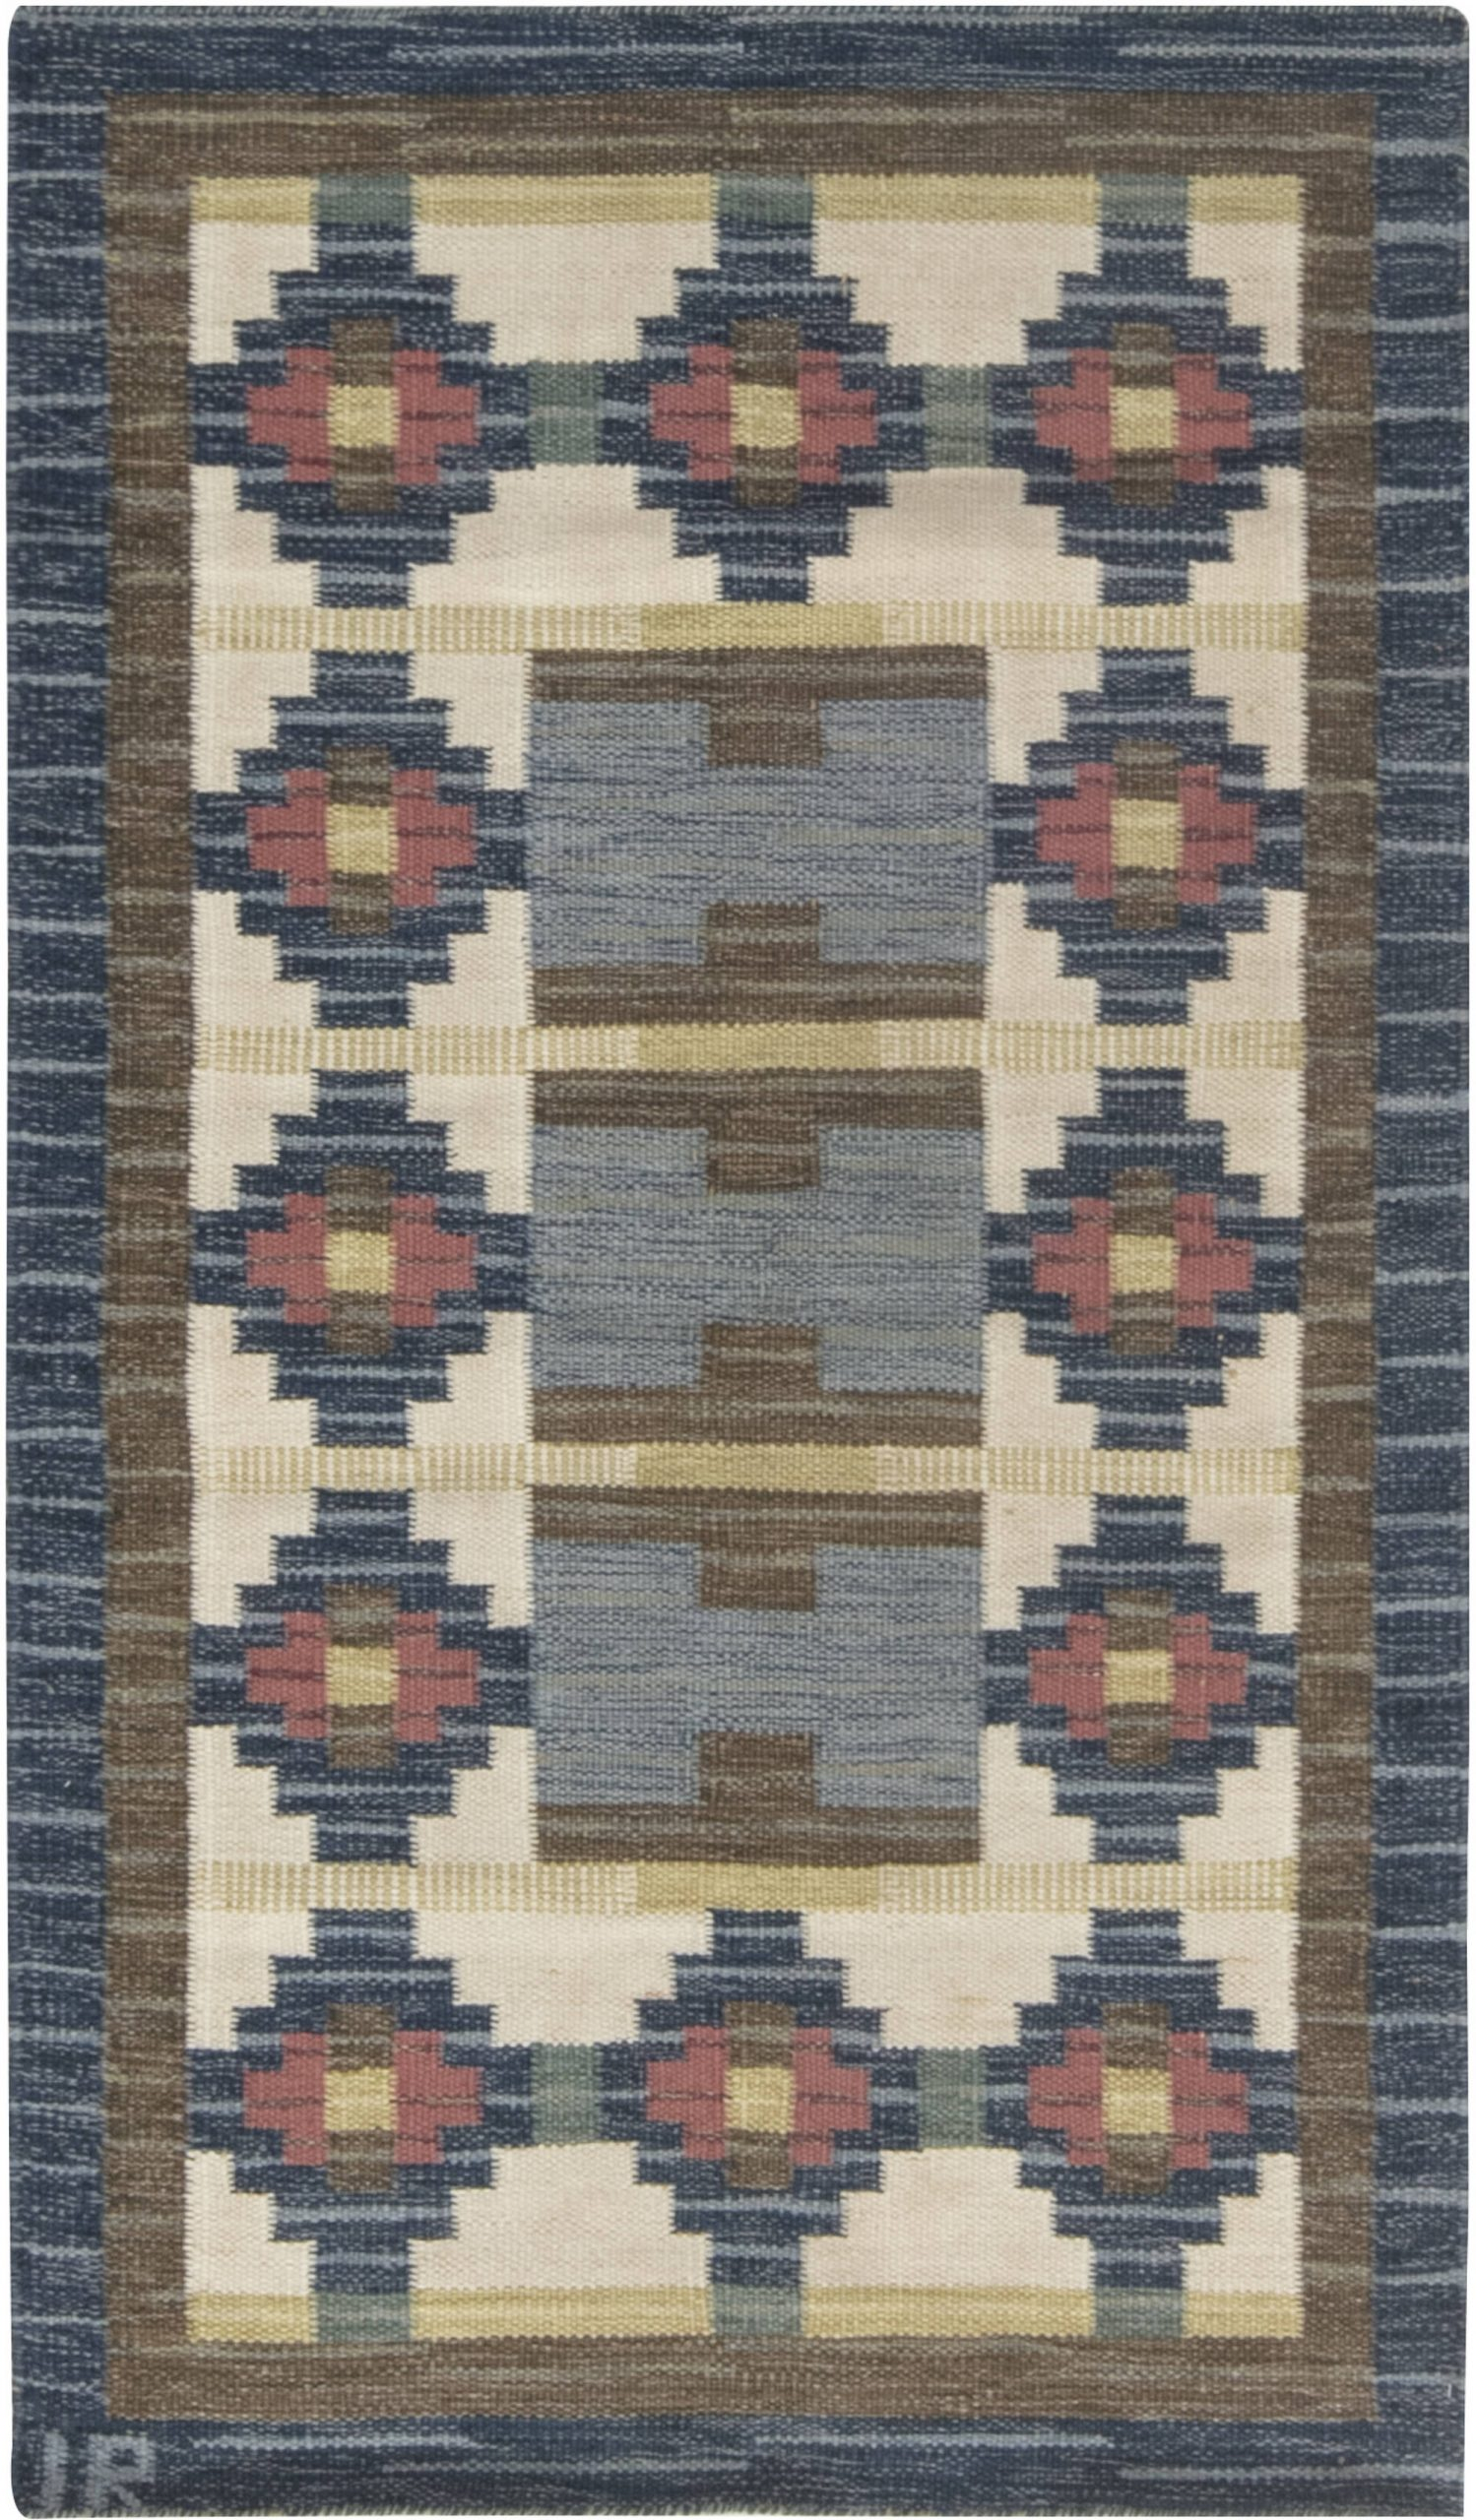 Vintage Swedish Flat weave rug by Ida Rydelius BB6663